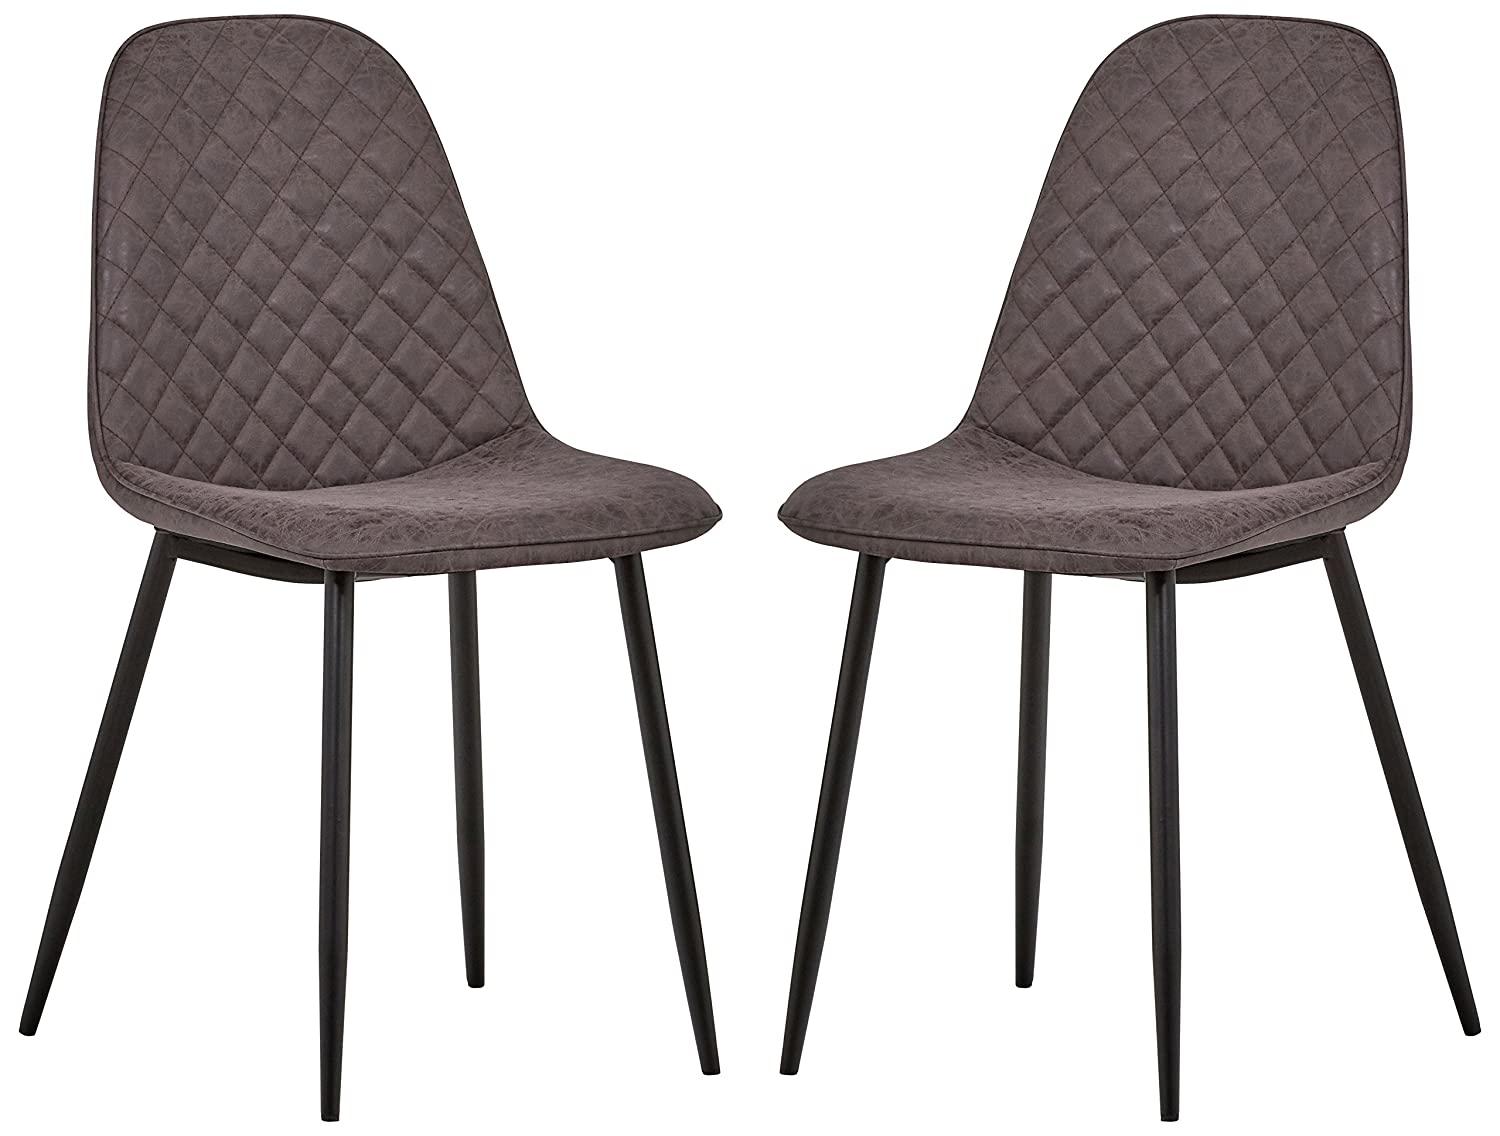 Rivet Ray Mid-Century Modern Kitchen Dining Room Chairs, Set of 2, 34.3 H, Charcoal Faux Leather